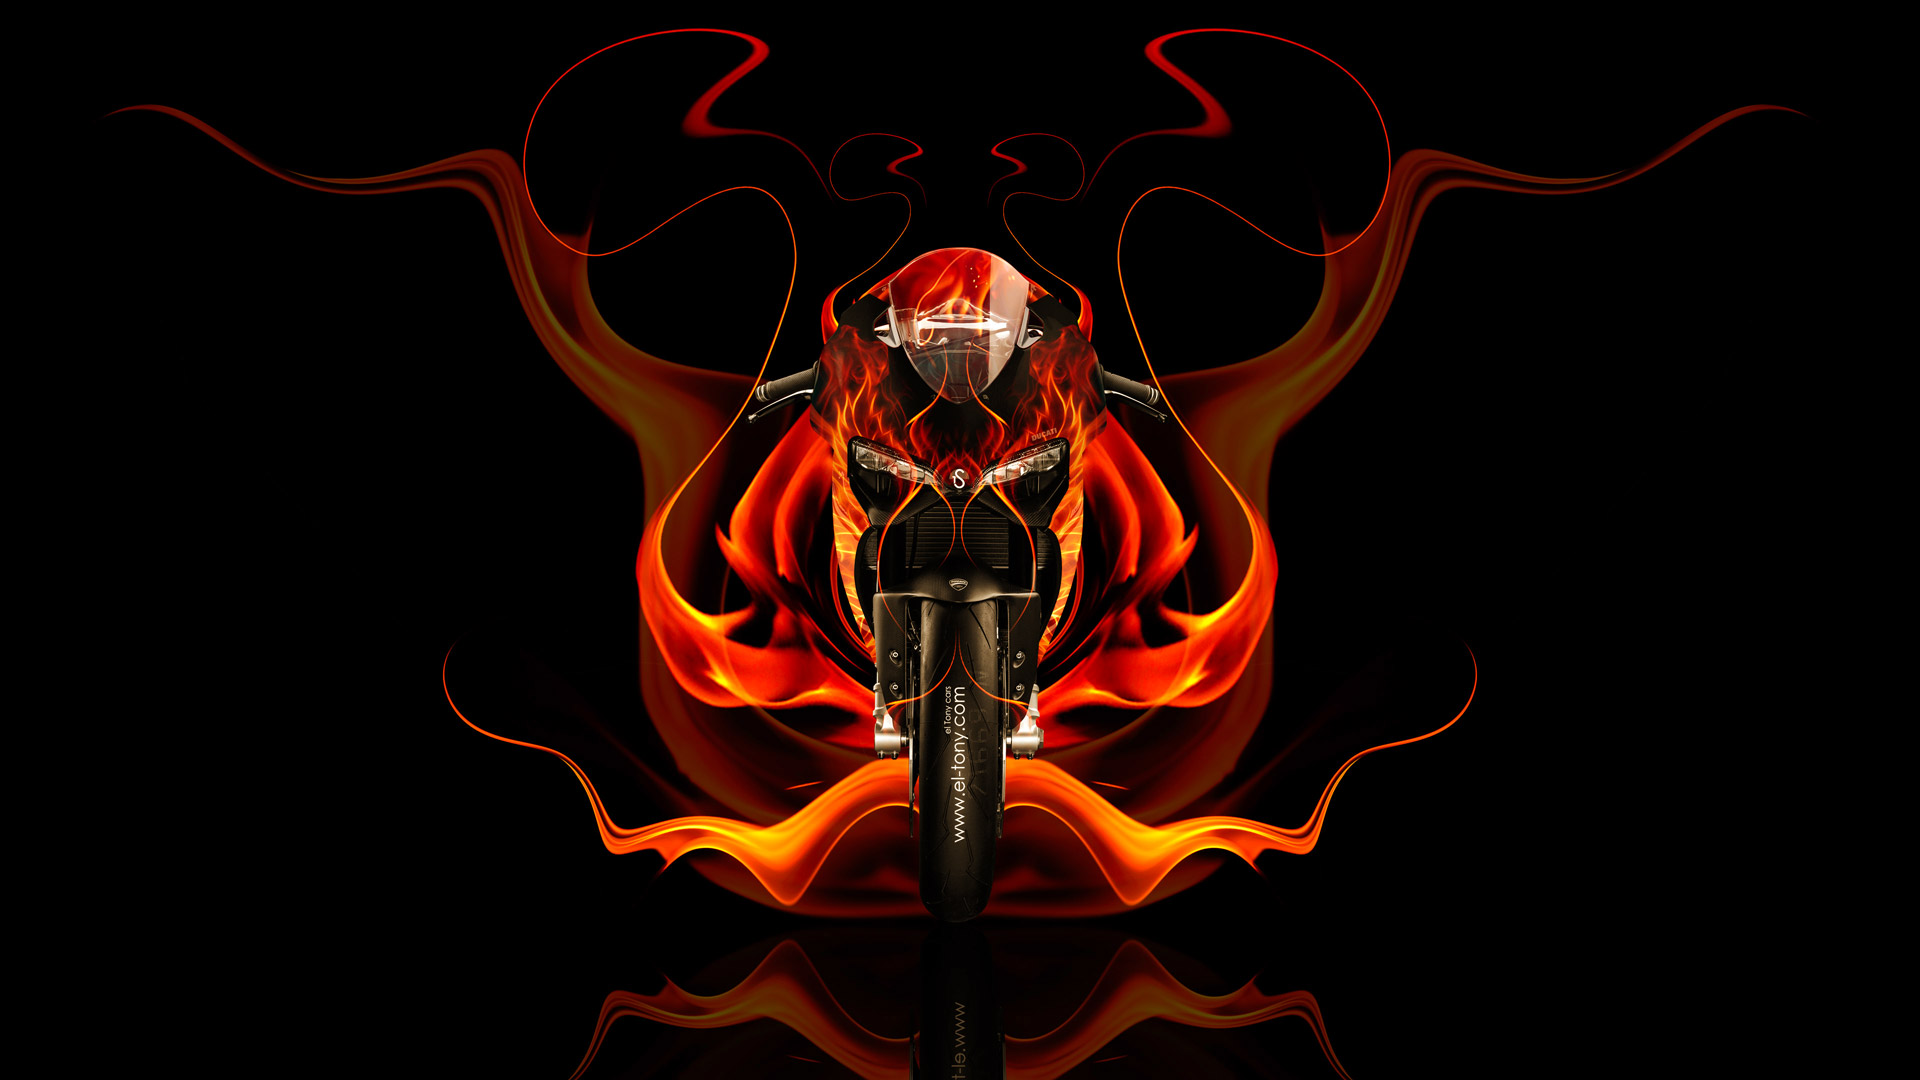 Ordinaire Ducati 1199 Front Fire Abstract Bike 2014